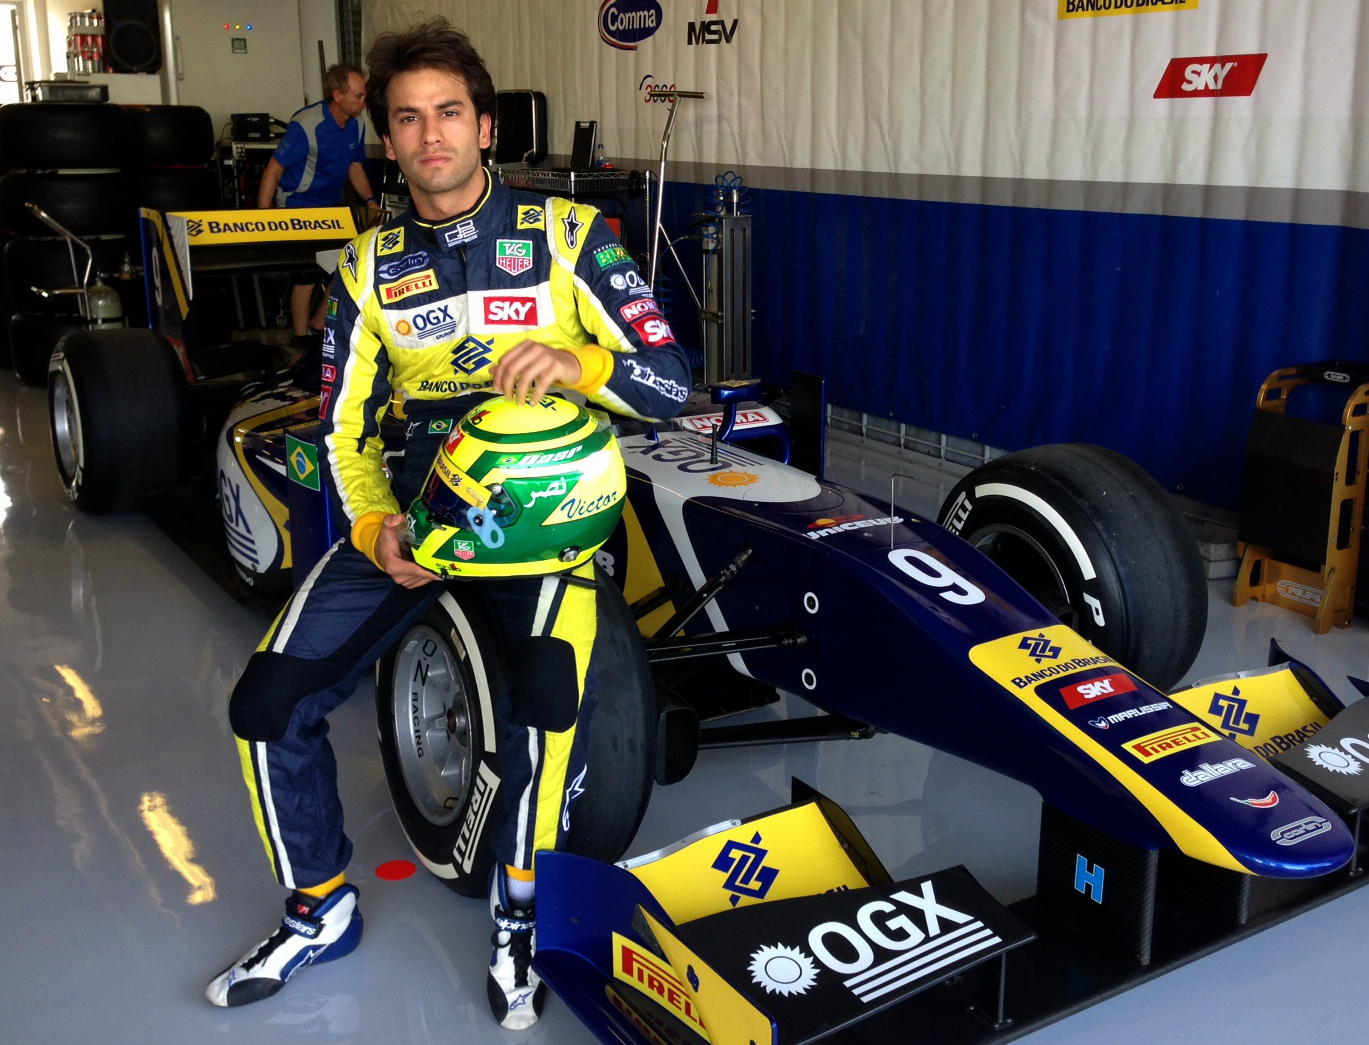 The 25-year old son of father Felipe and mother Olivia, 175 cm tall Felipe Nasr in 2018 photo